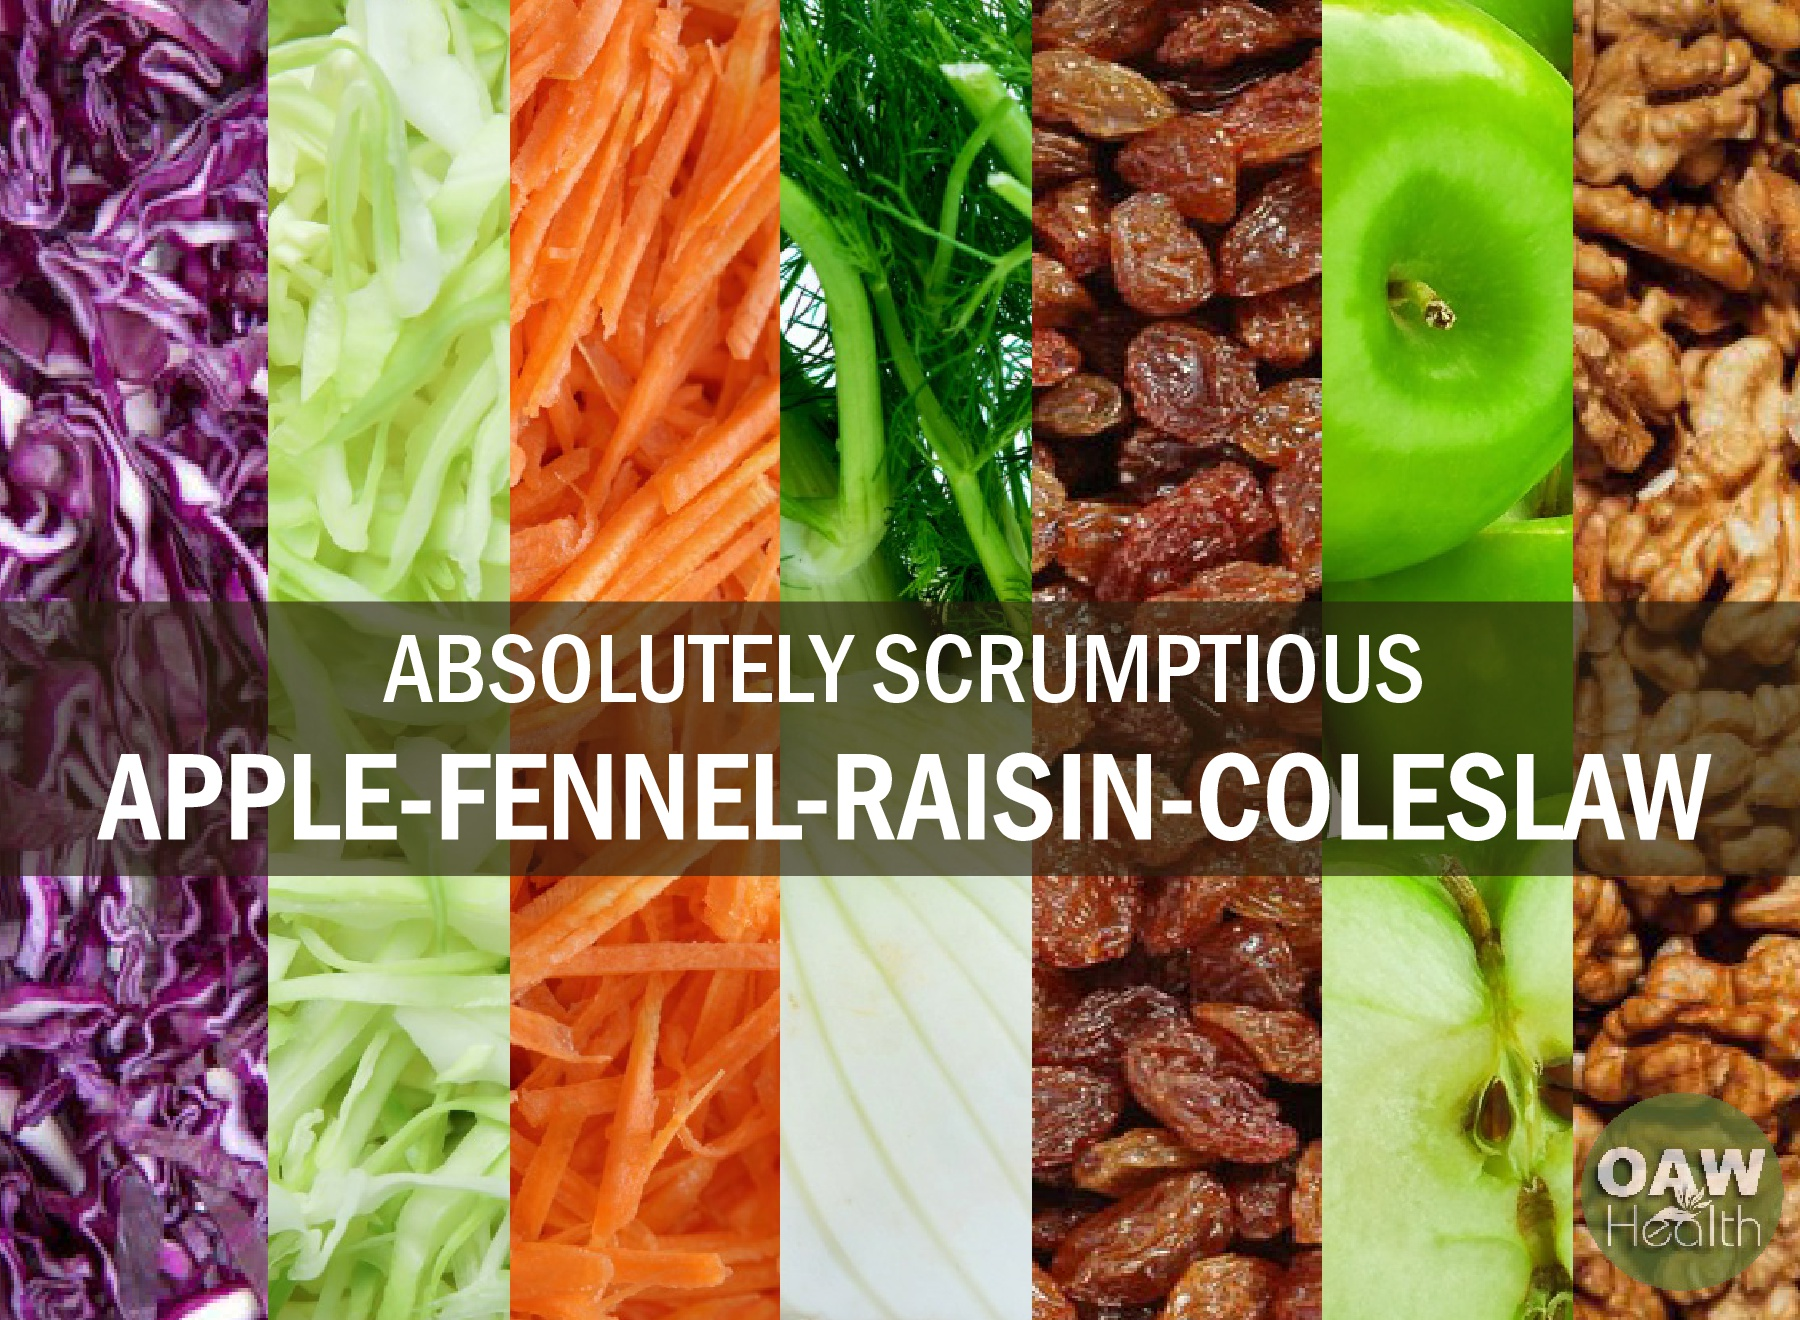 Absolutely Scrumptious Apple-Fennel-Raisin Coleslaw